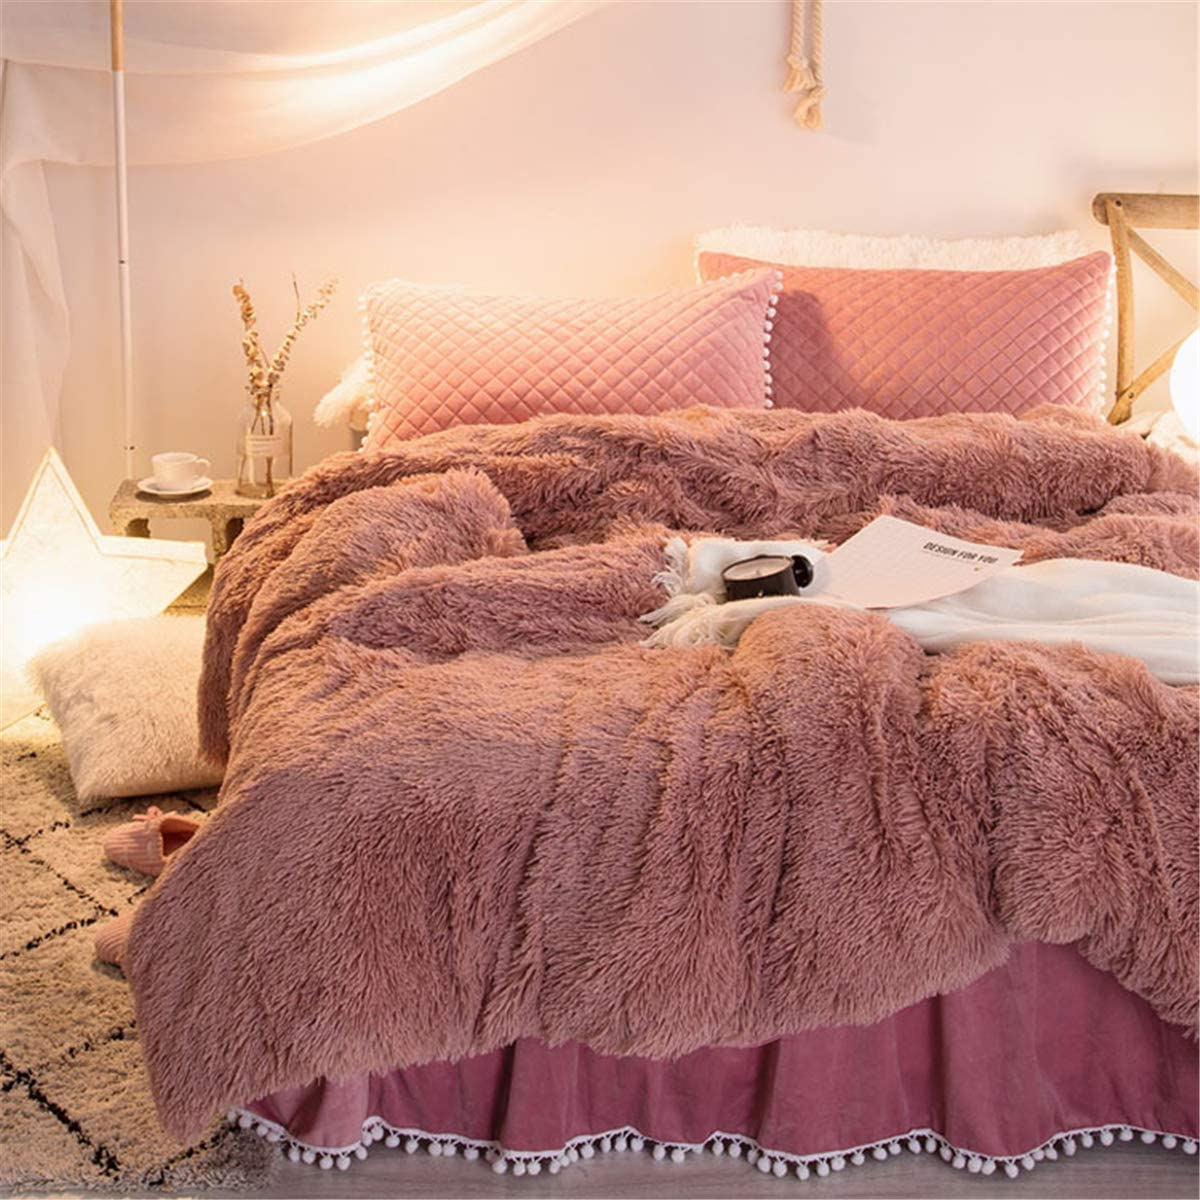 Moowoo Furry Shaggy Bedding Set,3PCS Velvet Flannel Duvet Cover Set,1 Faux Fur Duvet Cover + 2 Pompoms Fringe Pillowcases (Dusty Rose, Queen)